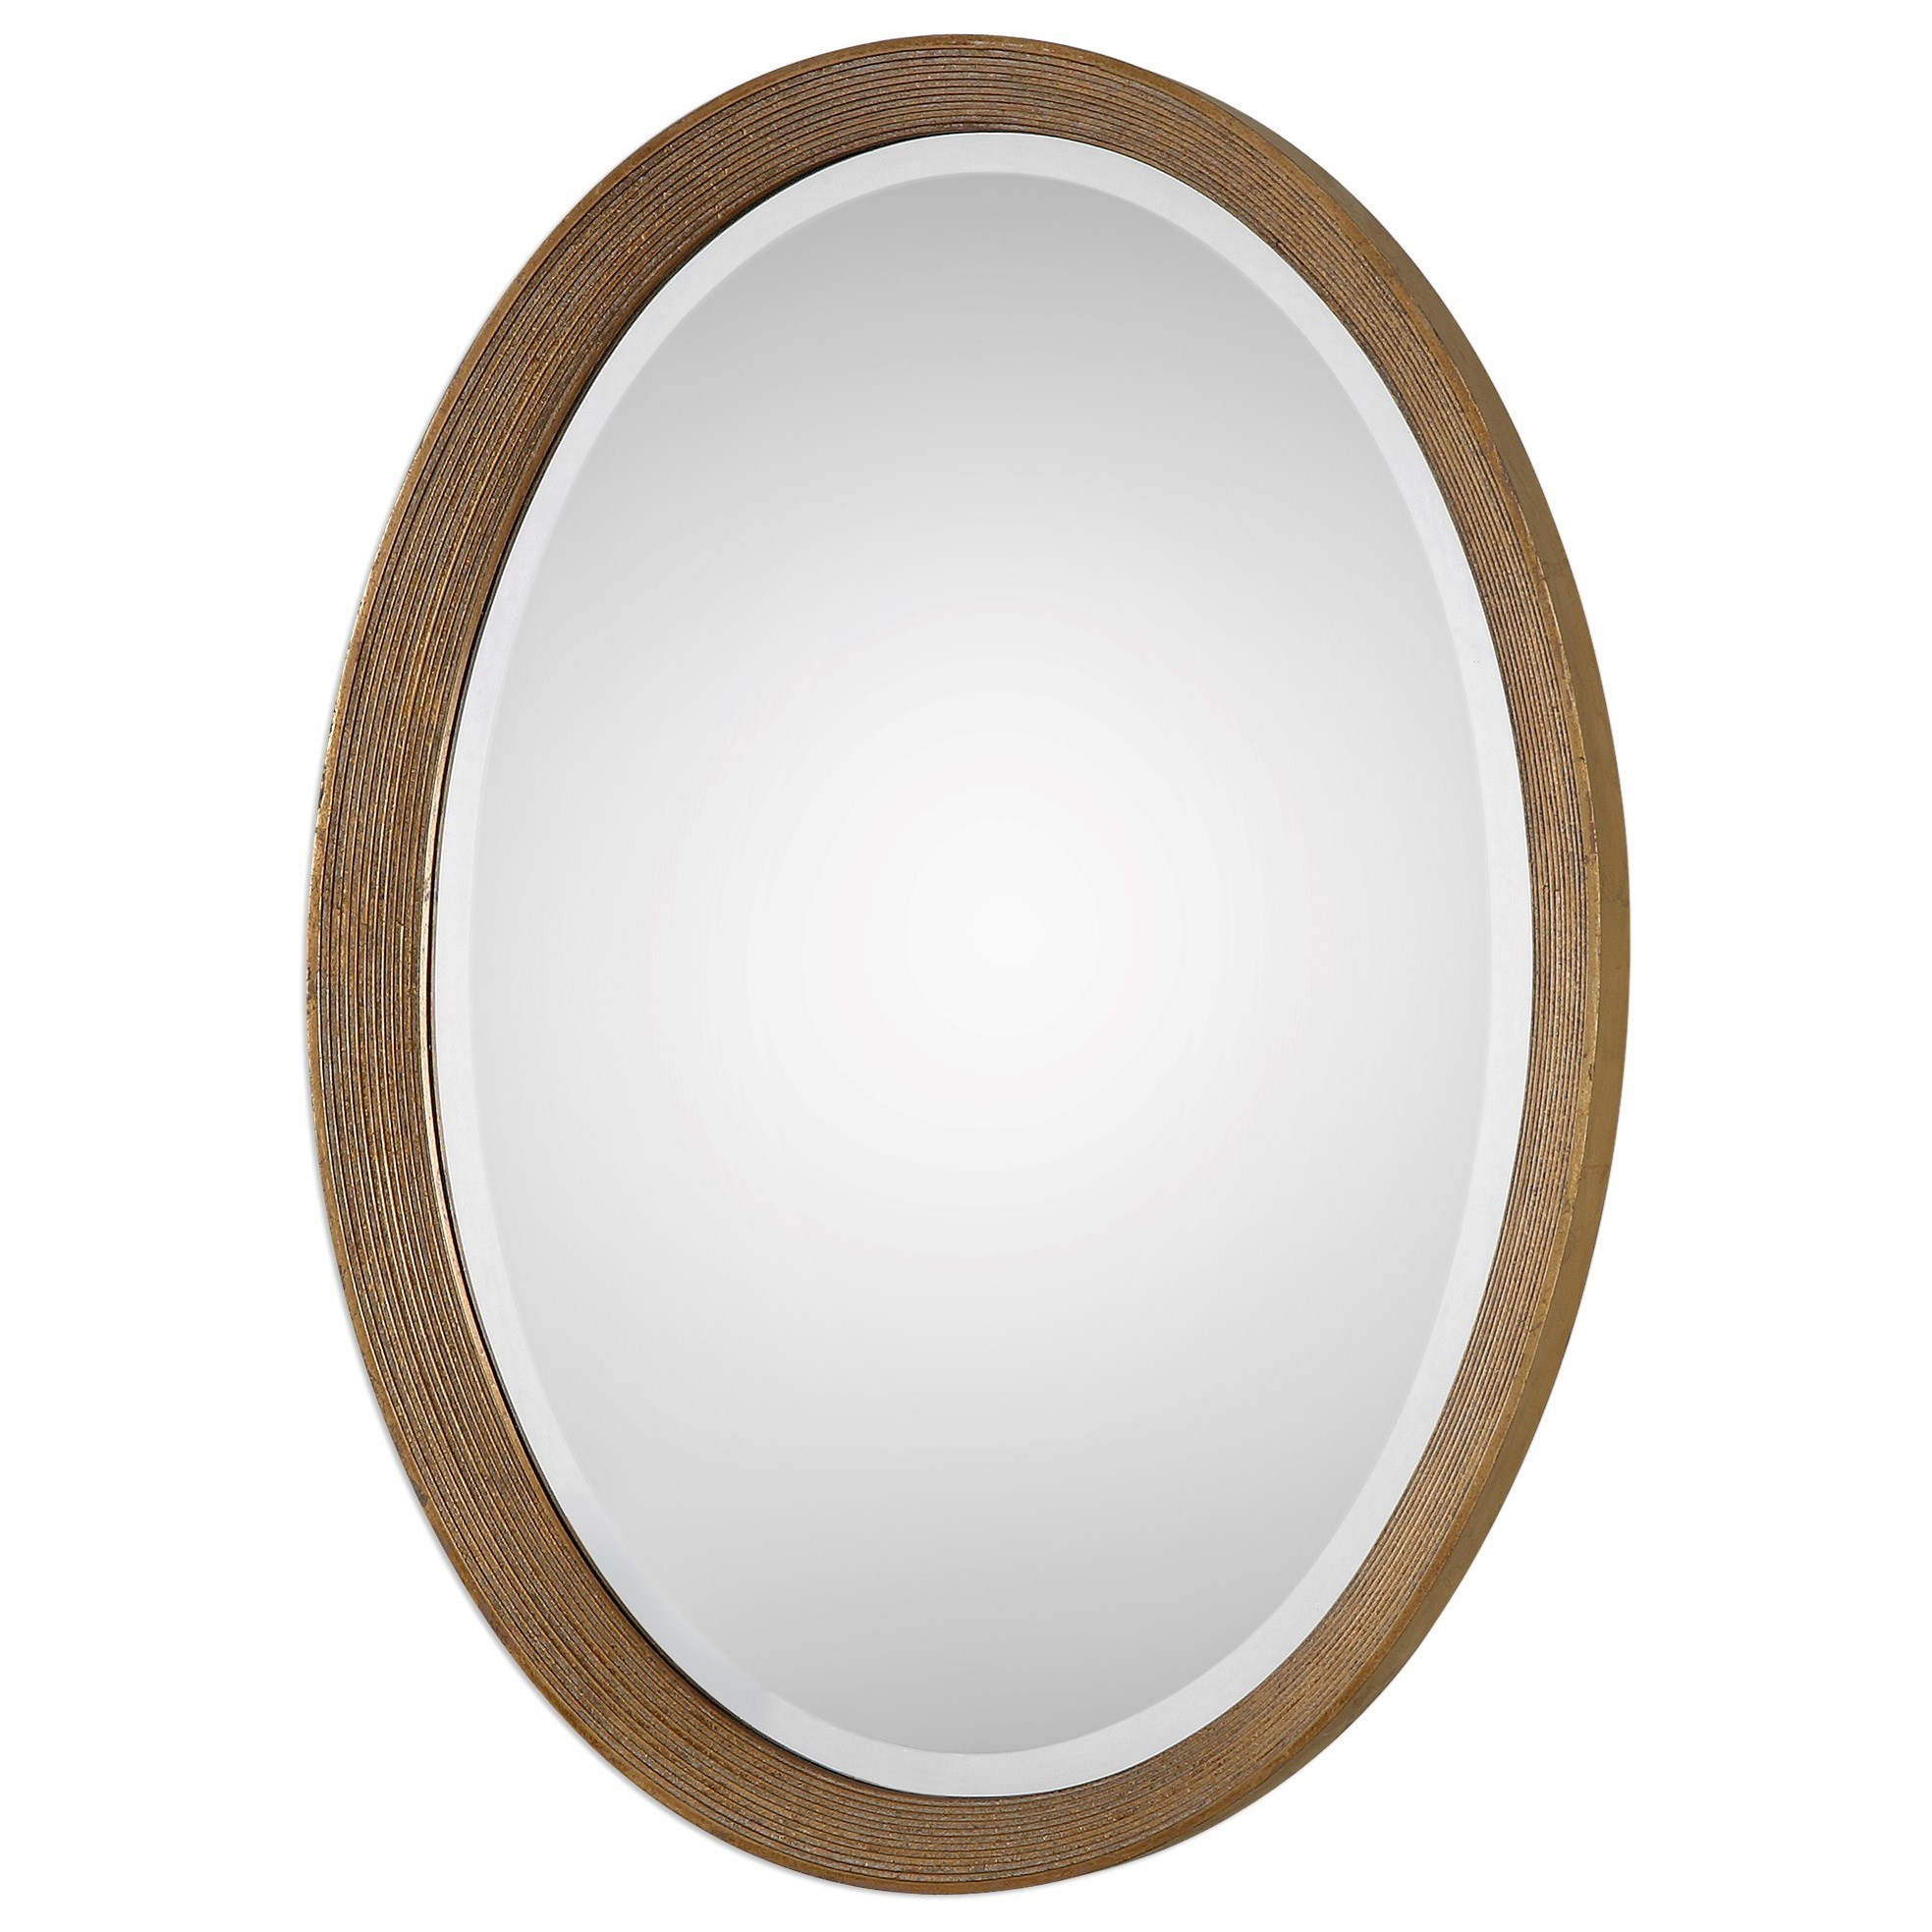 Uttermost Mirrors Arena Oval Mirror - Item Number: 09061